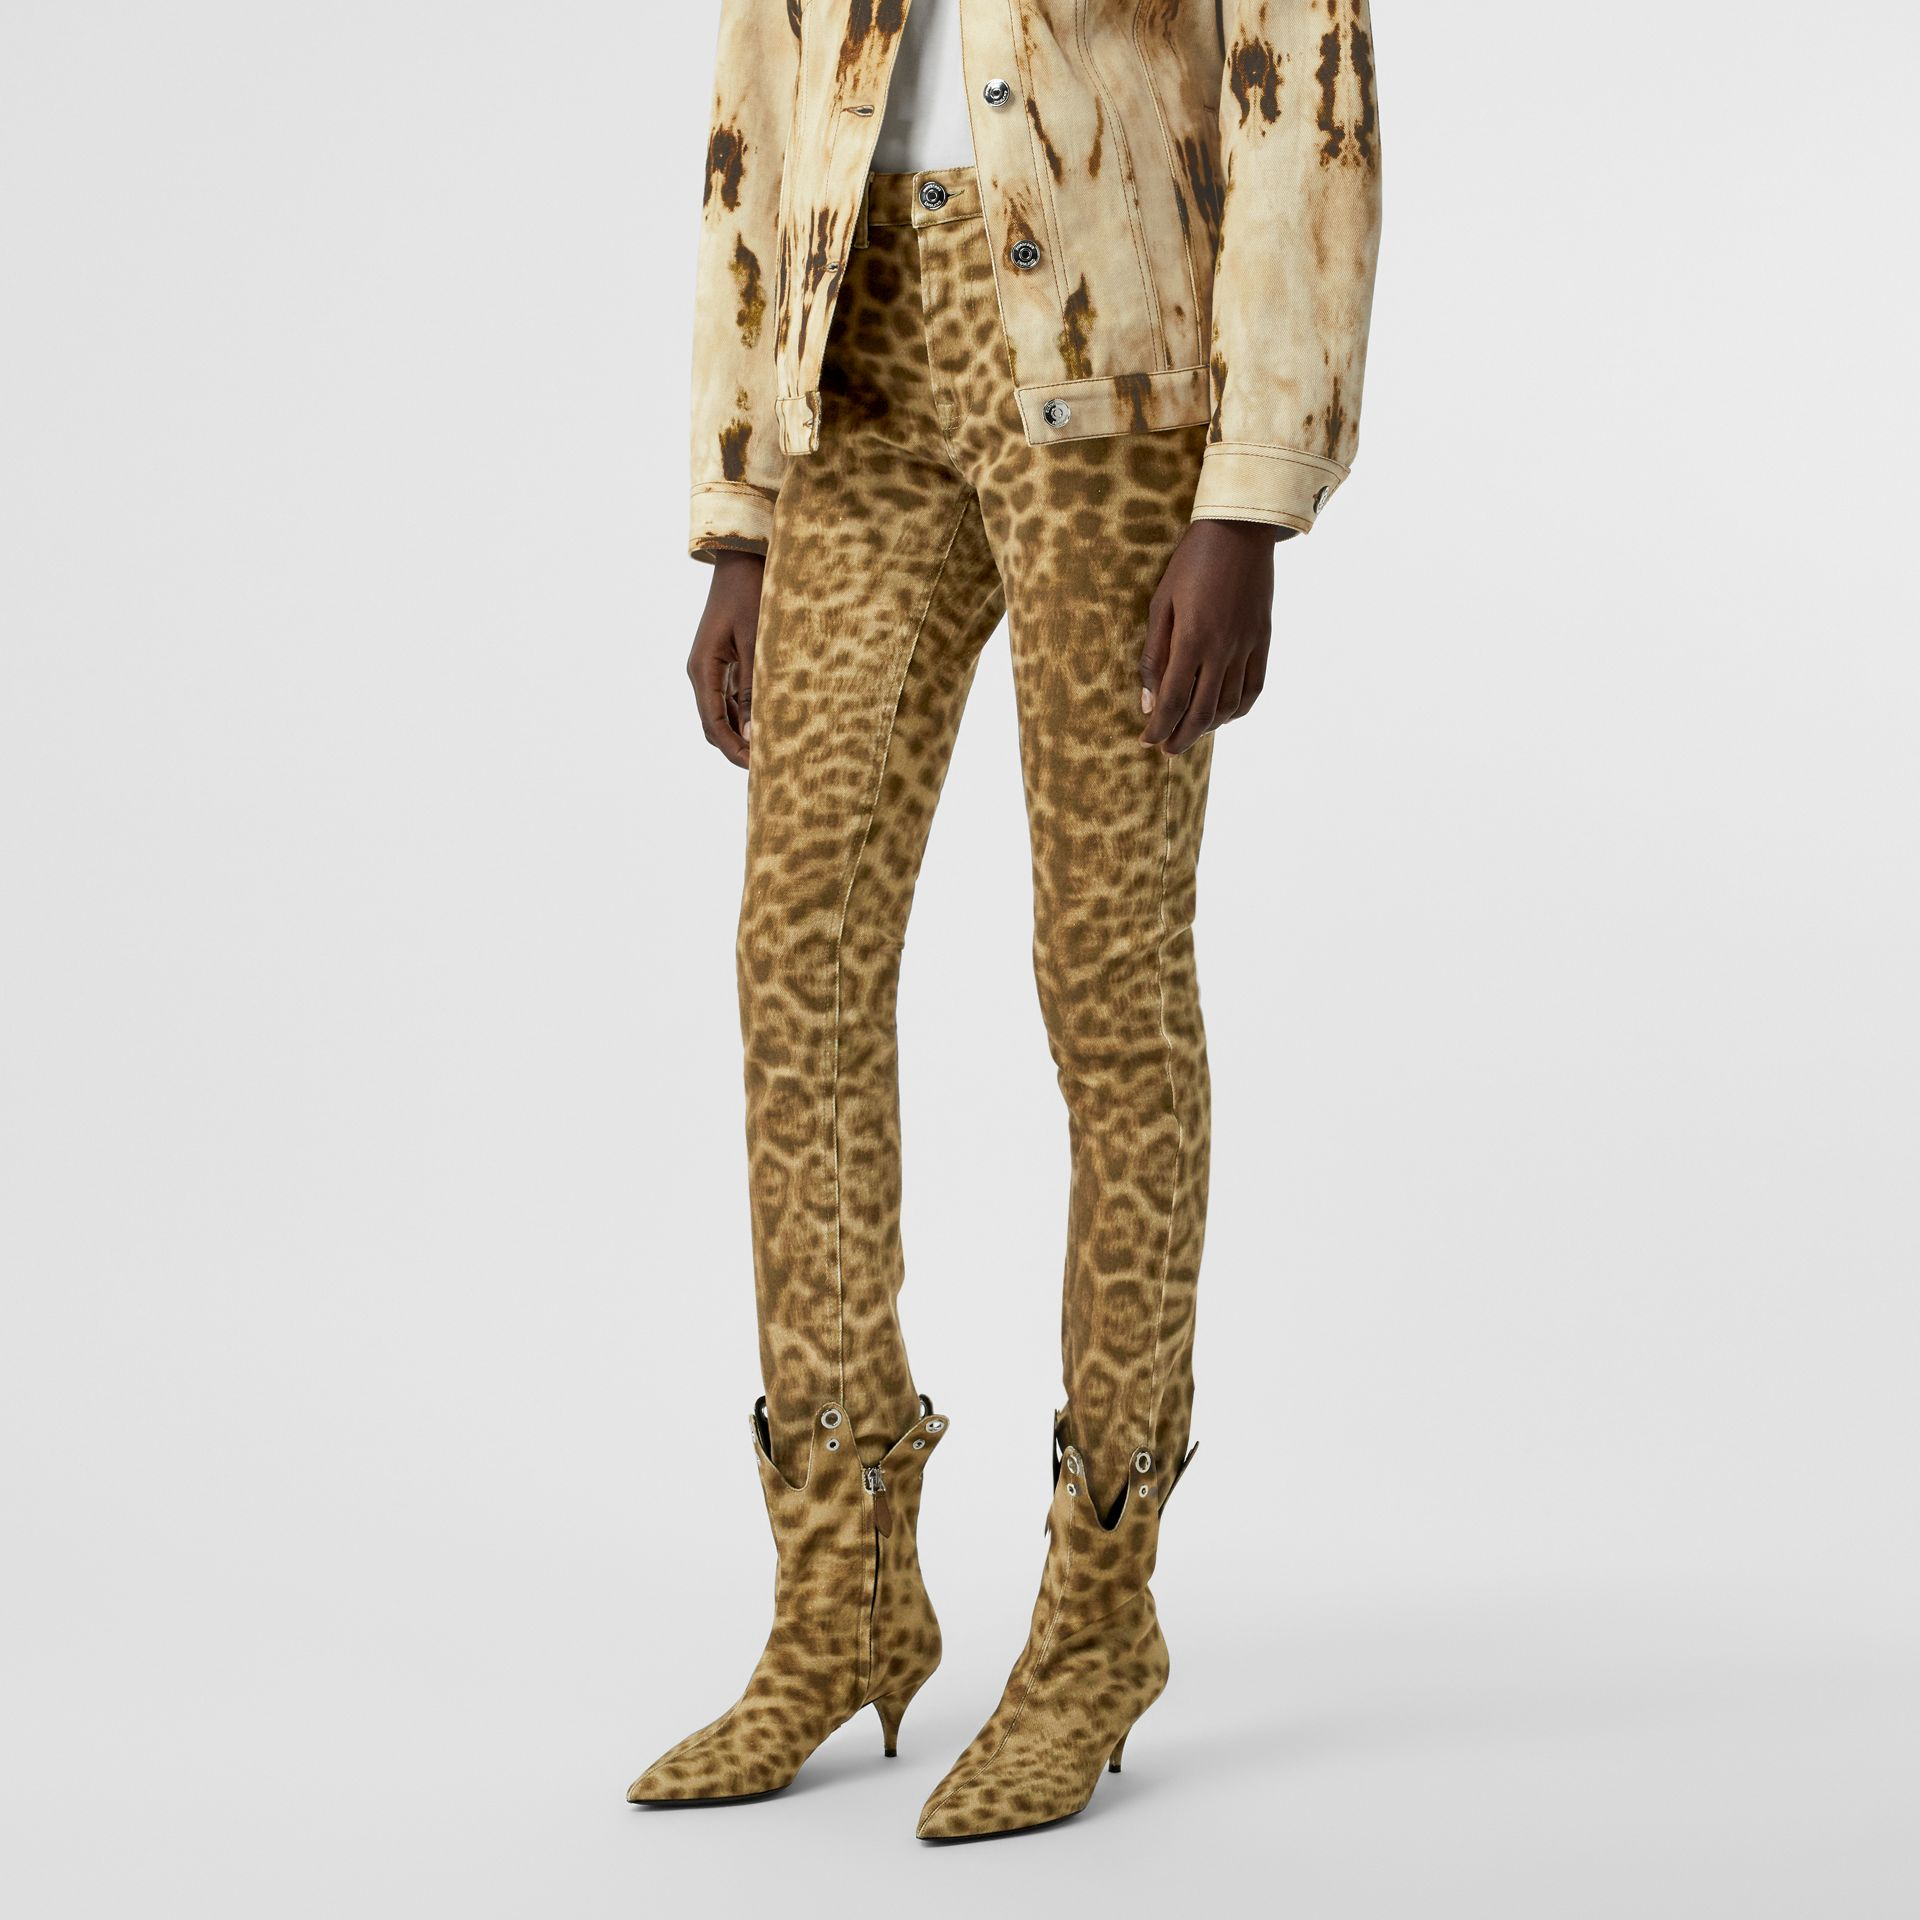 Straight Fit Leopard Print Japanese Denim Jeans in Beige - Women | Burberry - gallery image 3